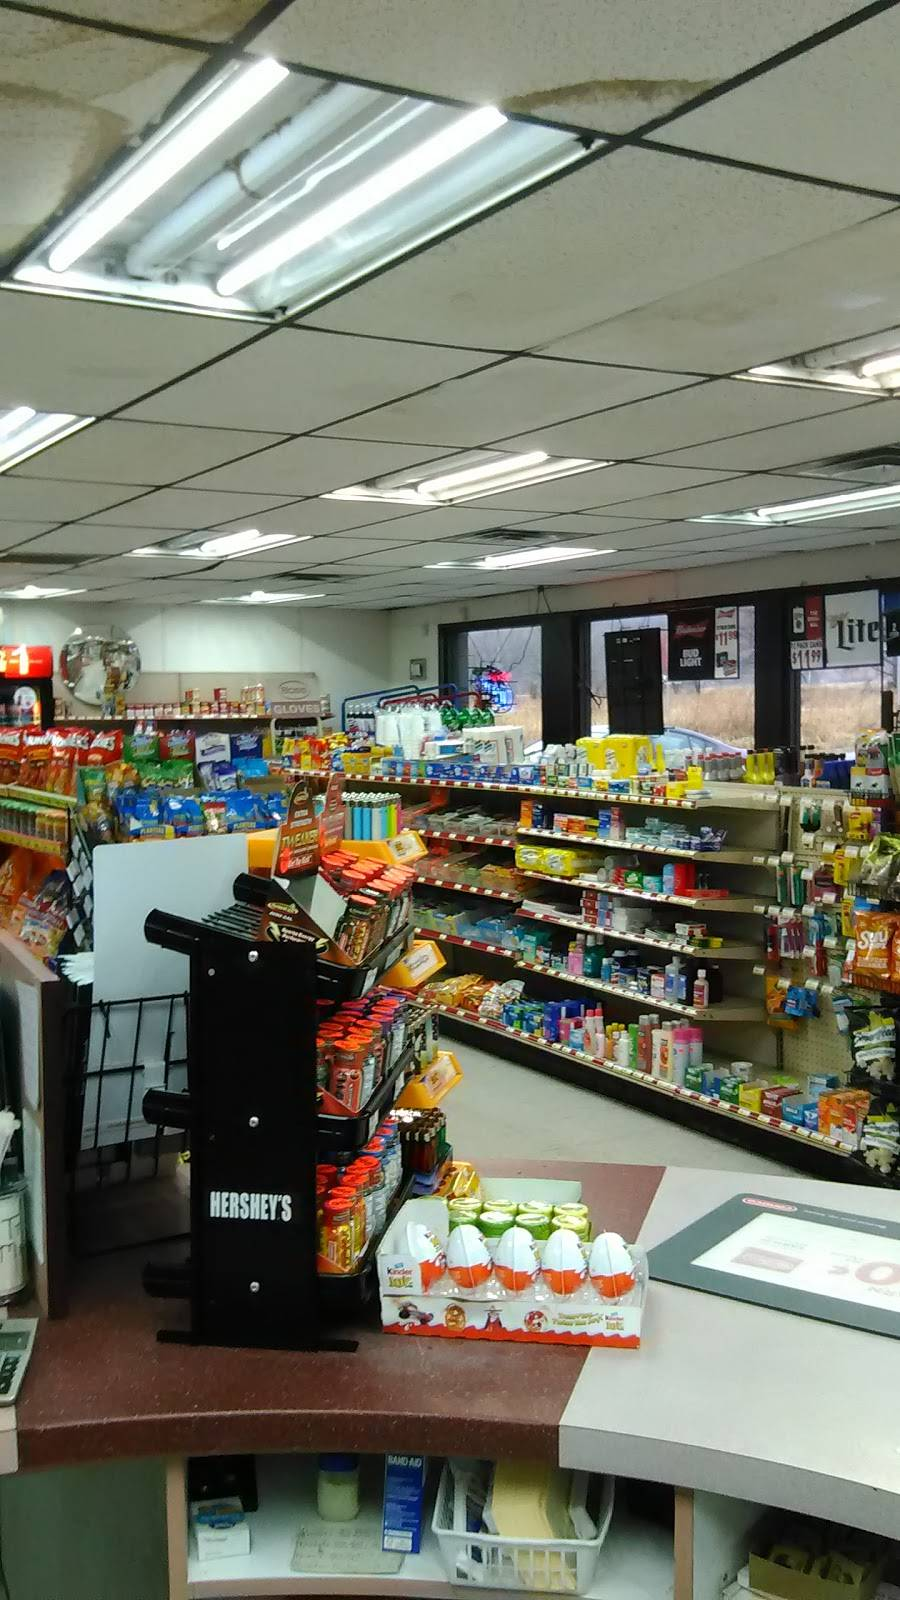 Highway Food Mart - convenience store  | Photo 1 of 5 | Address: 1600 W Wekiwa Rd, Sand Springs, OK 74063, USA | Phone: (918) 241-9400